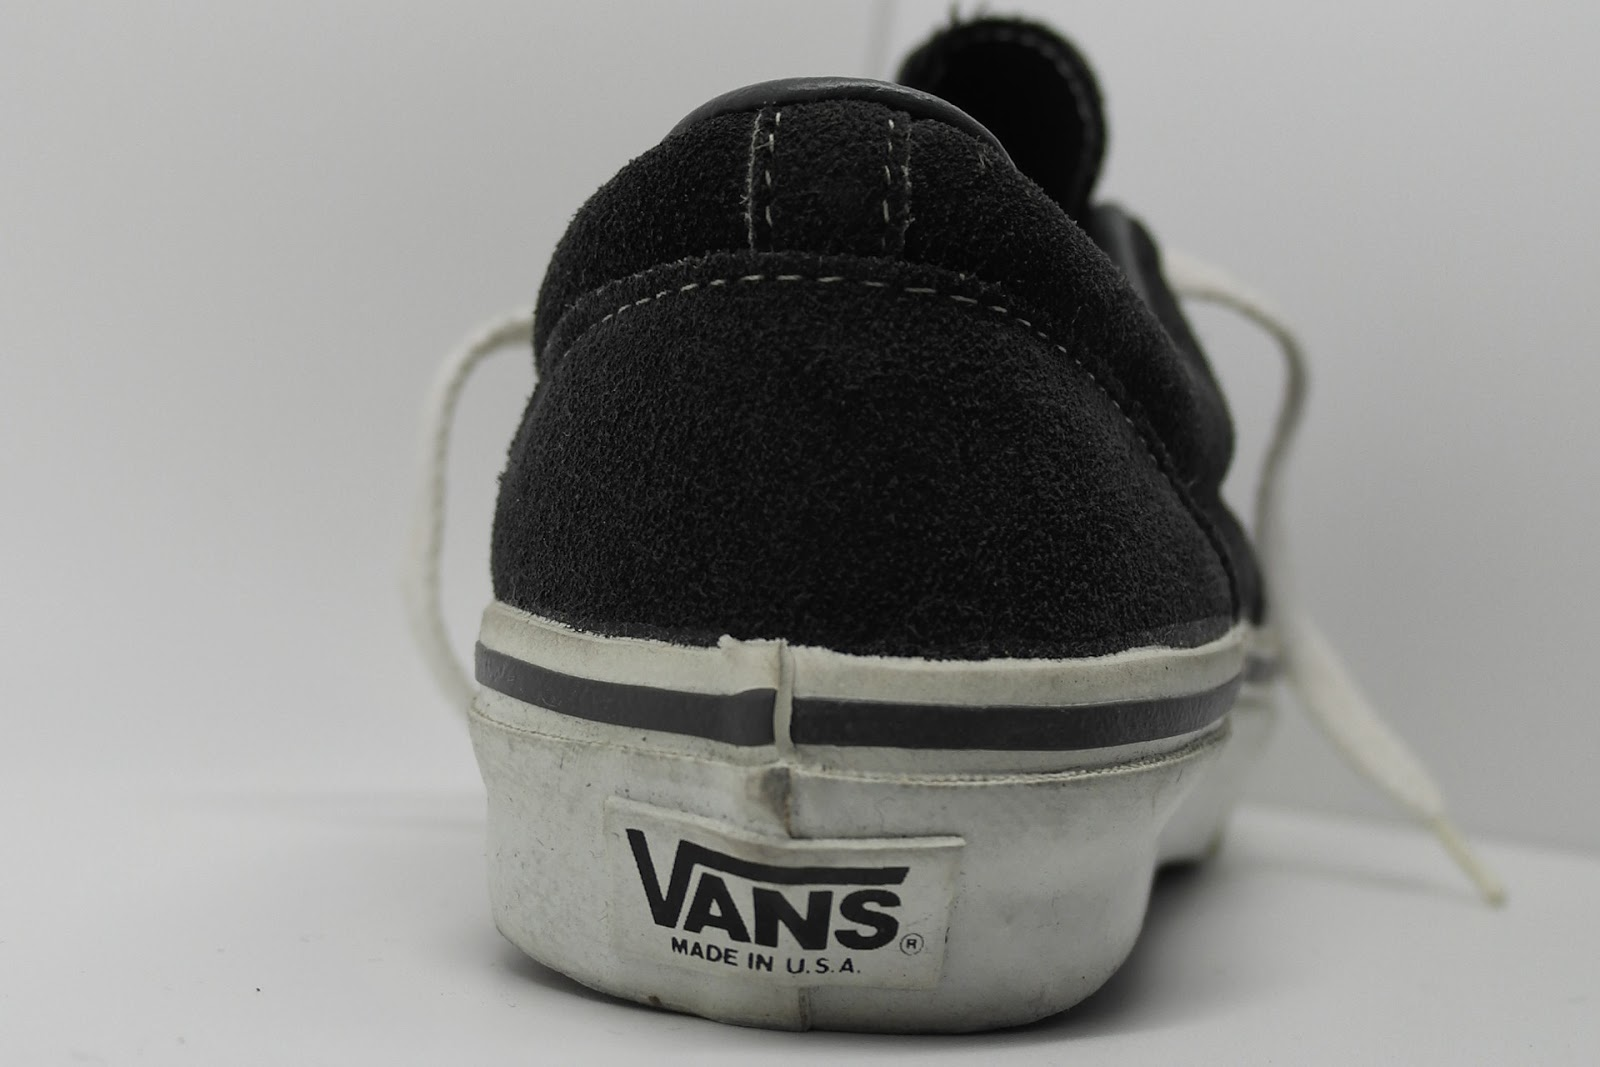 a79d98b404 theothersideofthepillow  vintage VANS style  95 ERA charcoal suede ...